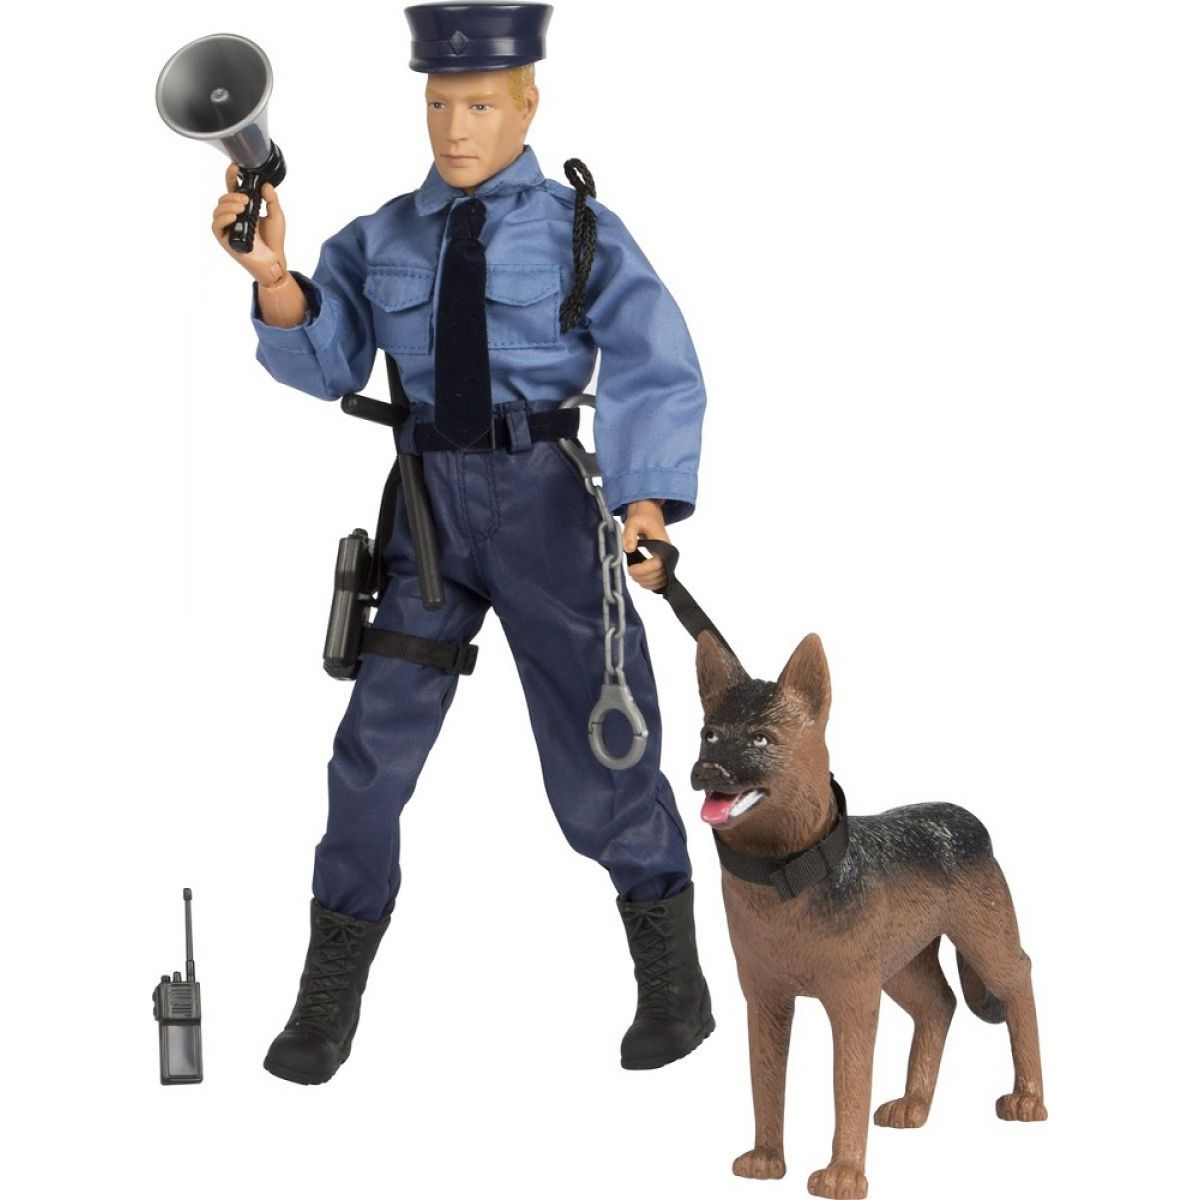 World Peacekeepers Policie figurka 30,5cm